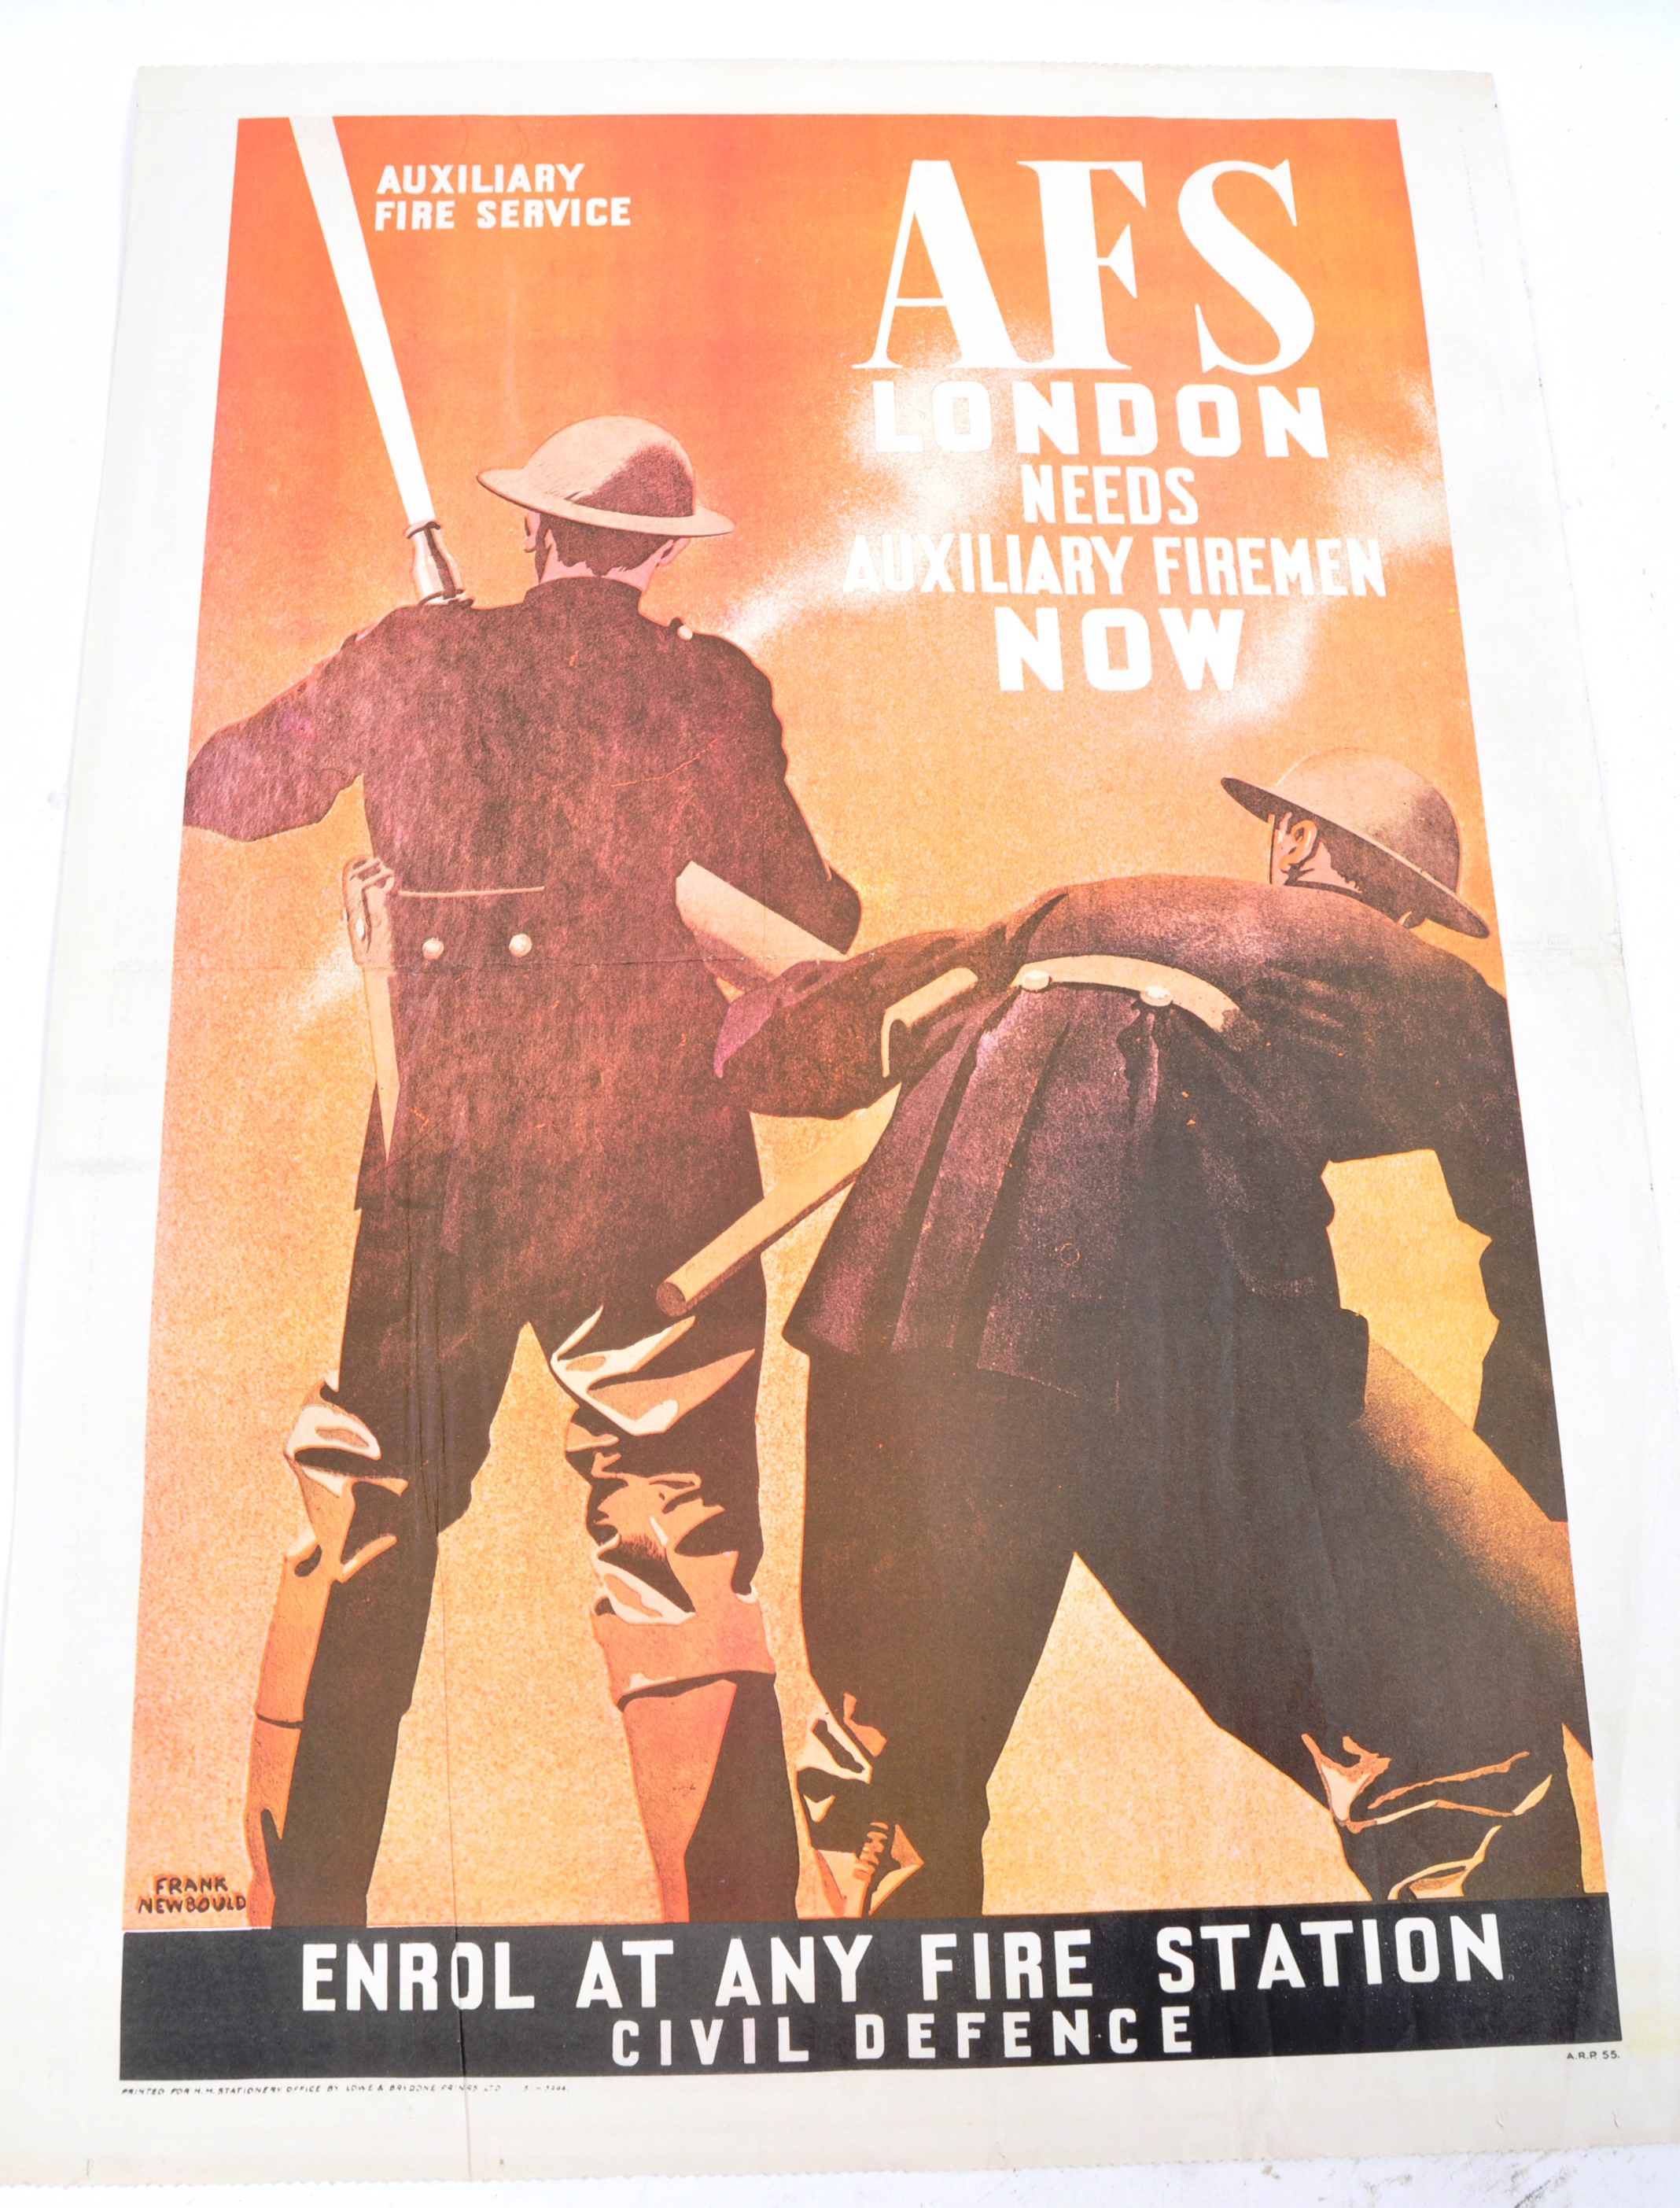 WWII SECOND WORLD WAR POSTERS - CHURCHILL, AFS, HOME FRONT ETC - Image 5 of 6